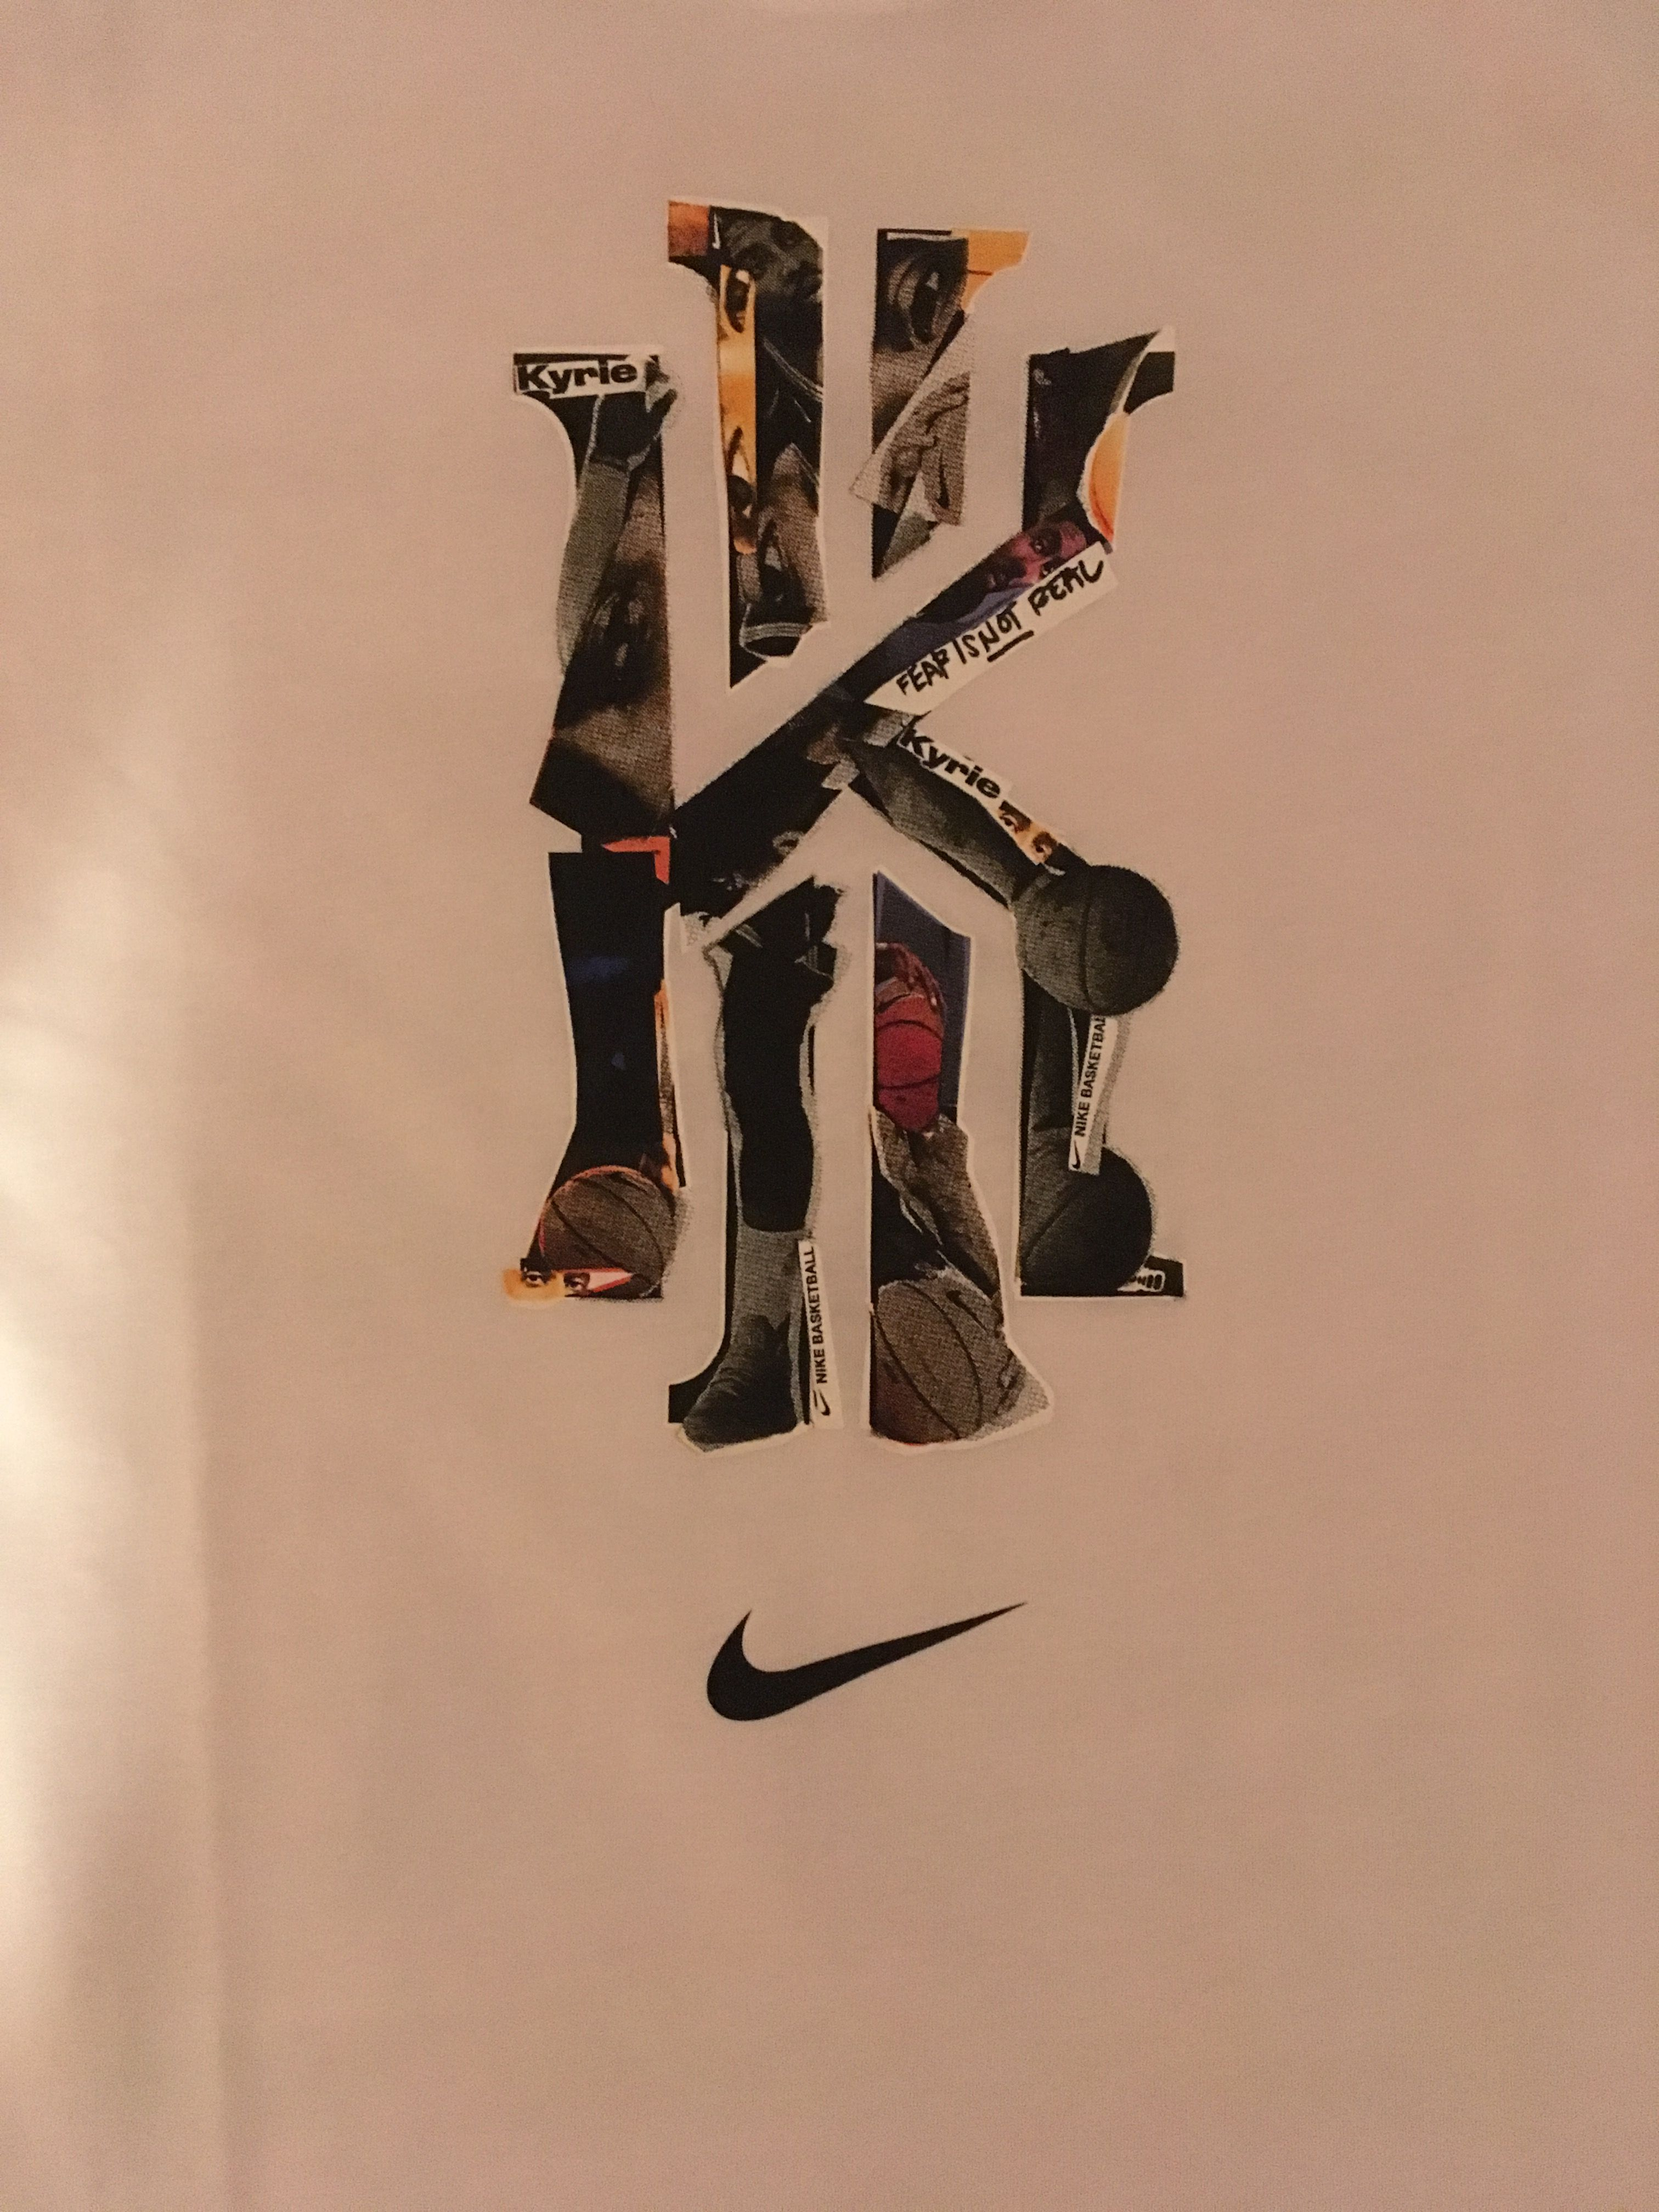 Pin On Kyrie